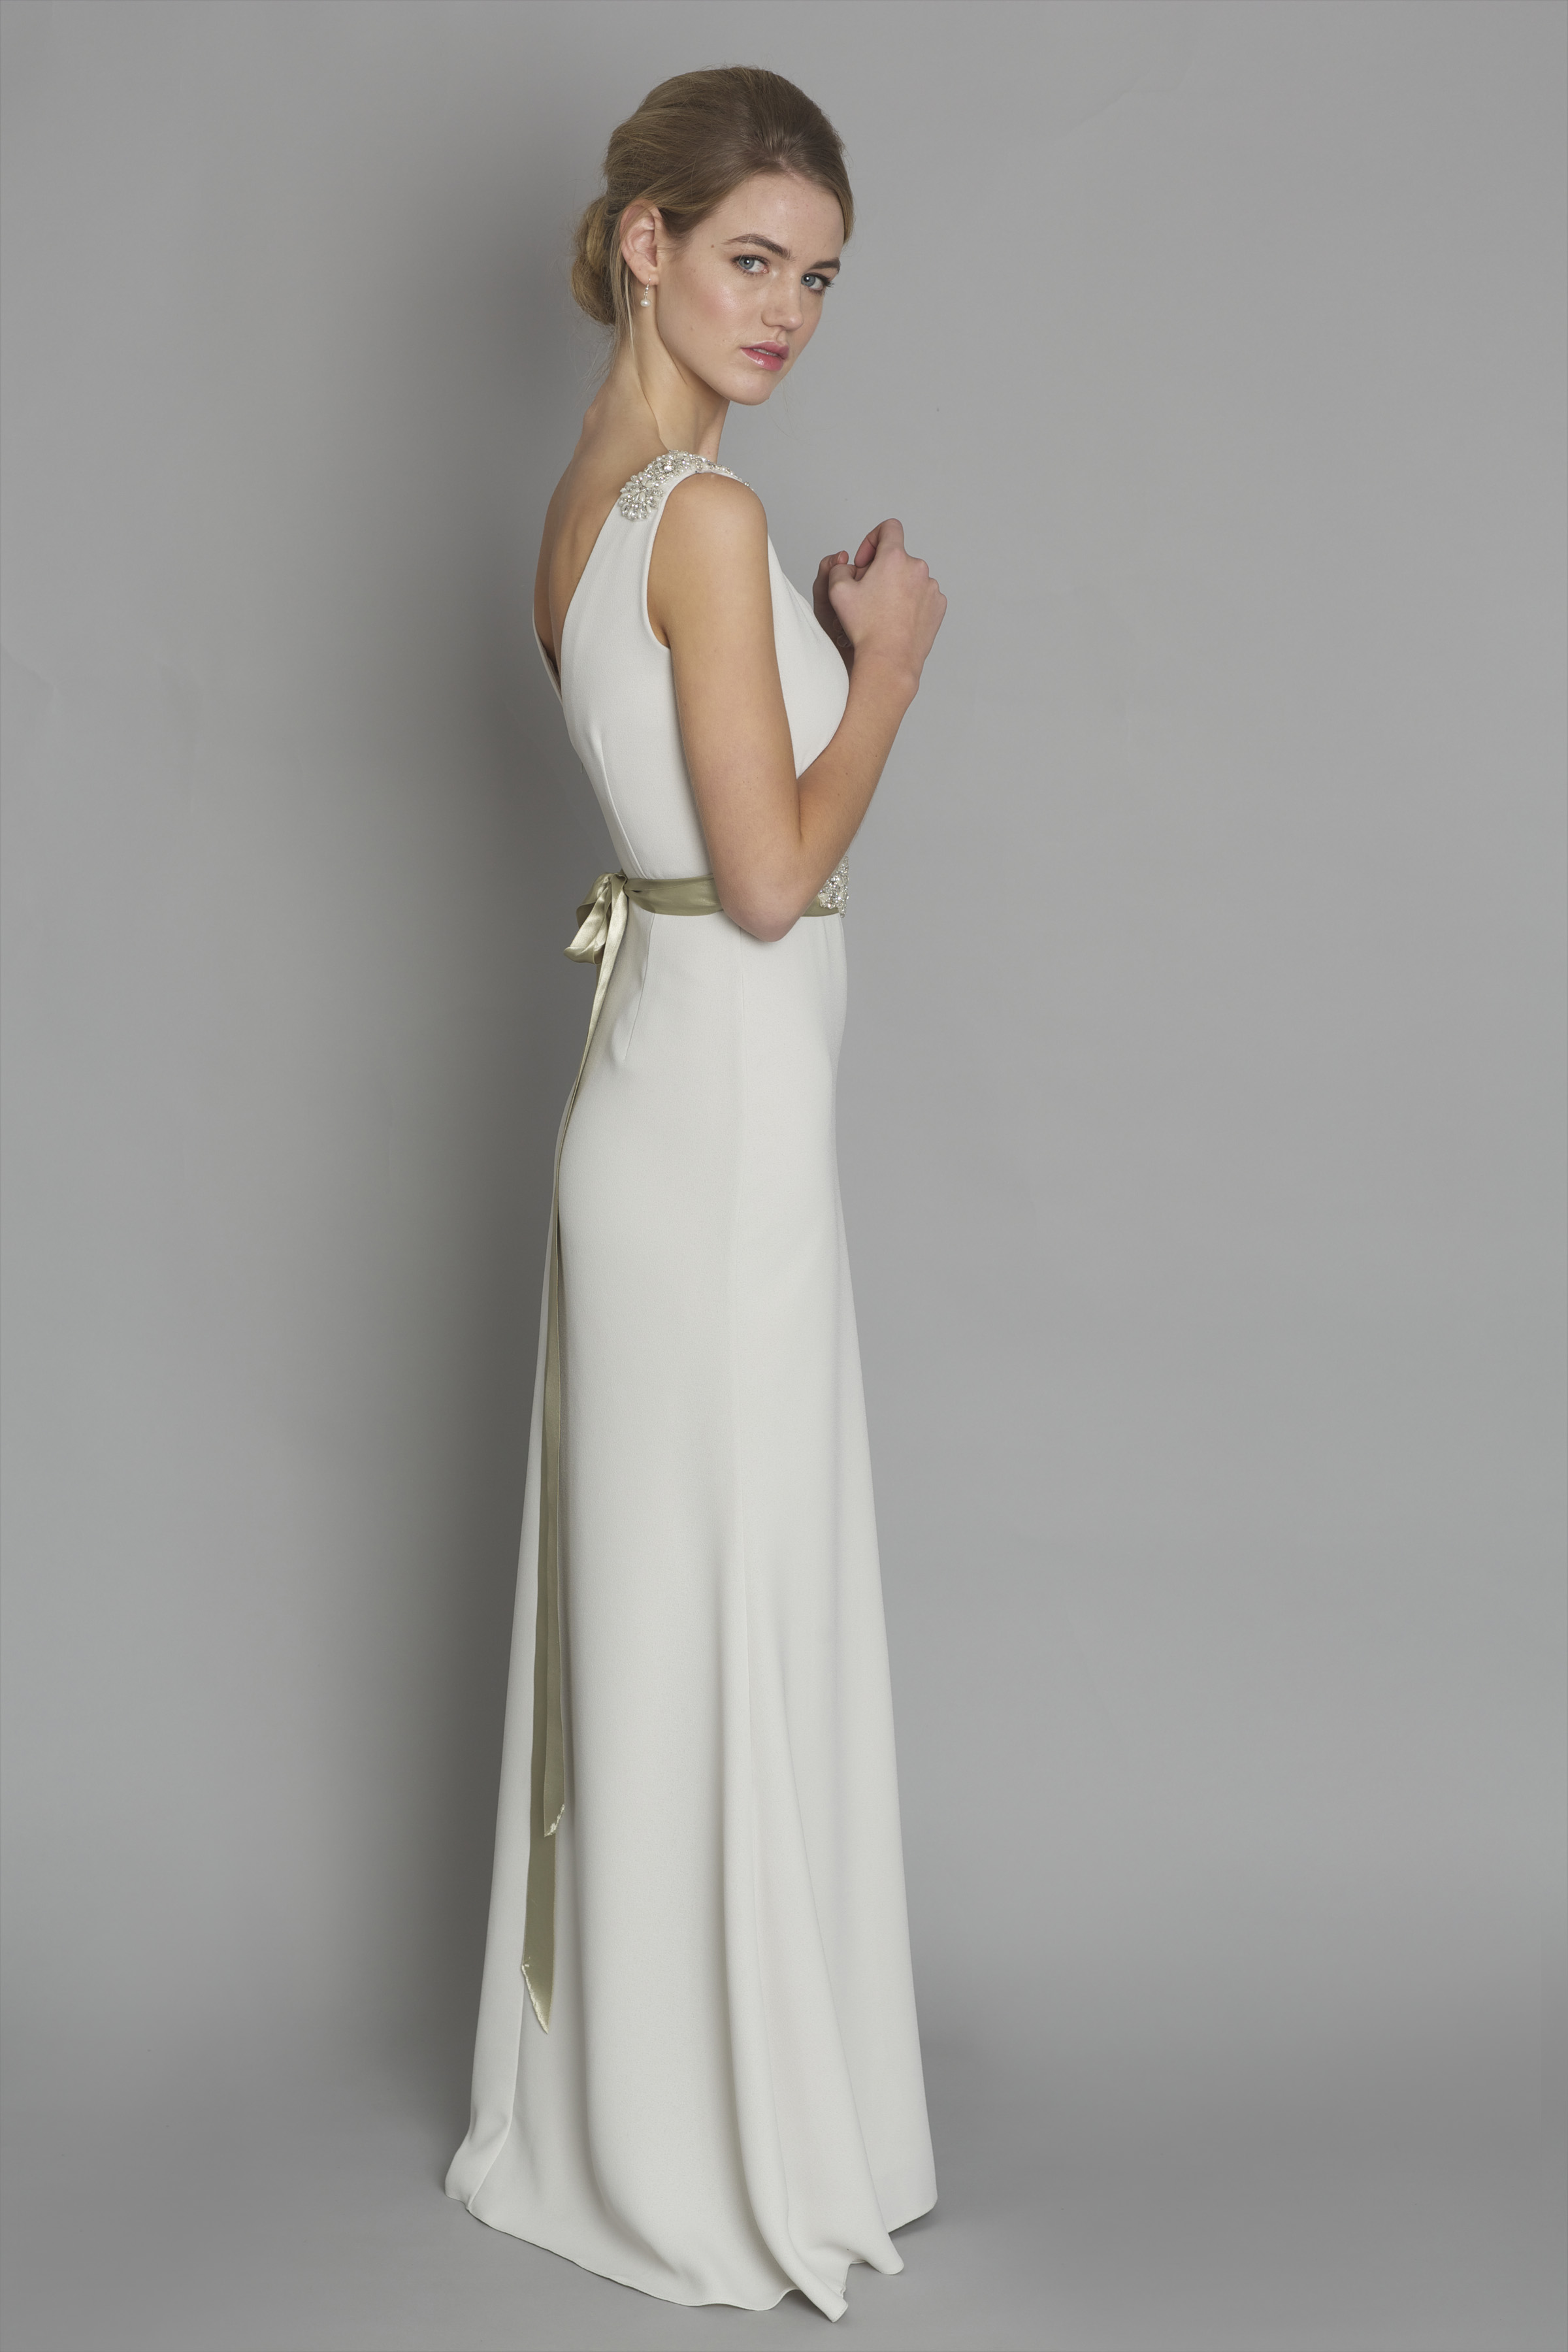 Pistachio style dc1179 bridesmaid evening debs dresses from pistachio style dc1179 ombrellifo Image collections